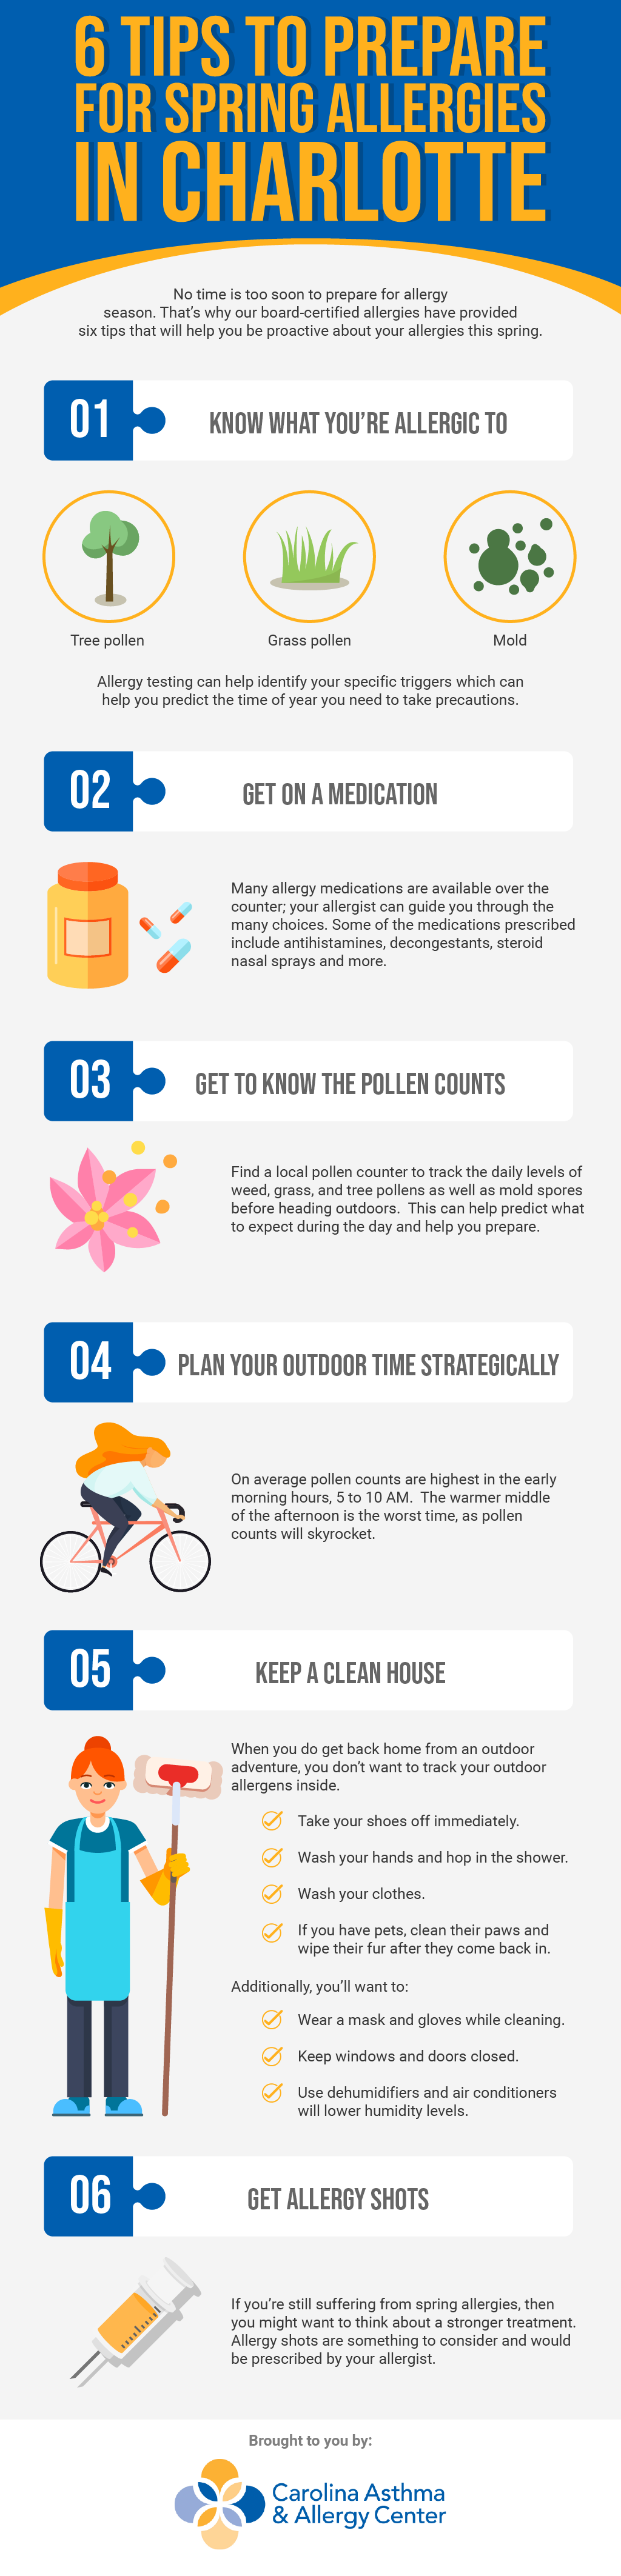 Infographic demonstrating six tips to prepare for spring allergies by Carolina Asthma & Allergy Center